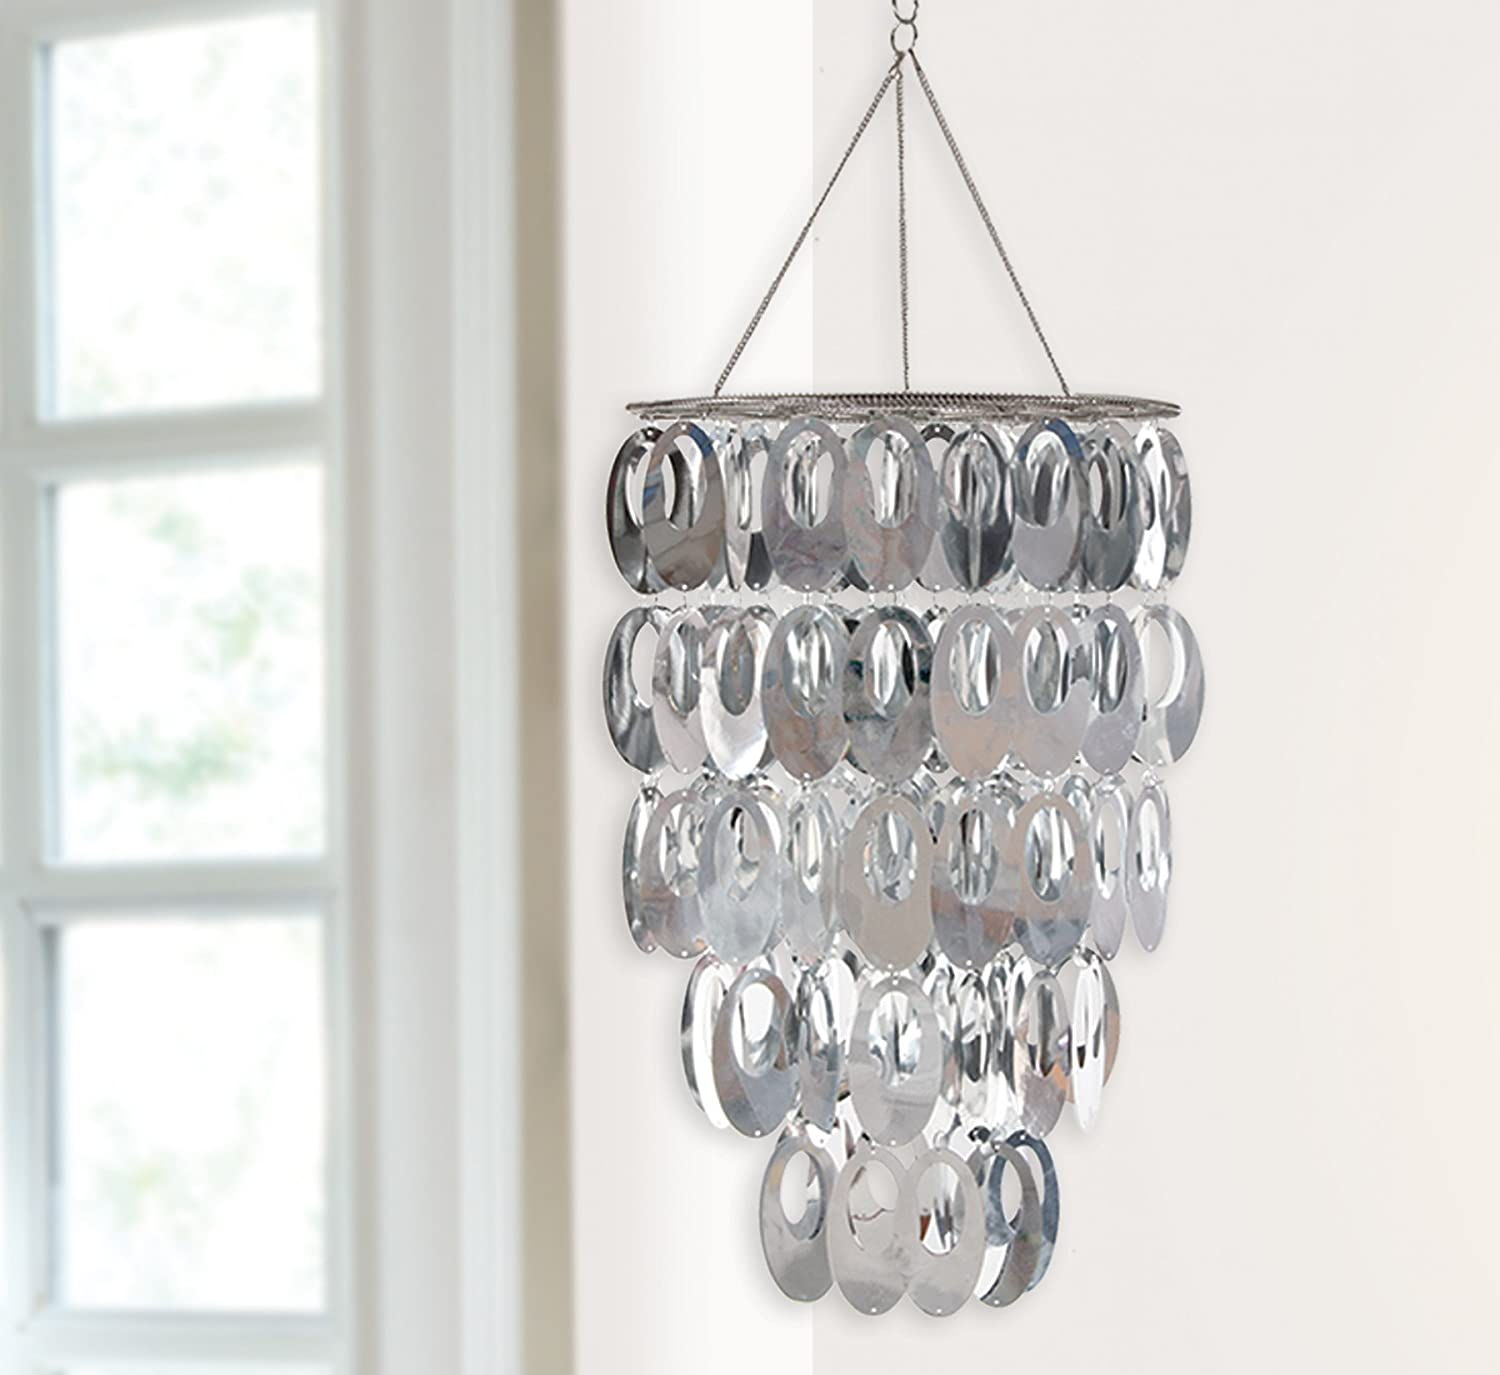 Amazon Wall Pops WPC Ready to Hang Bling Chandelier